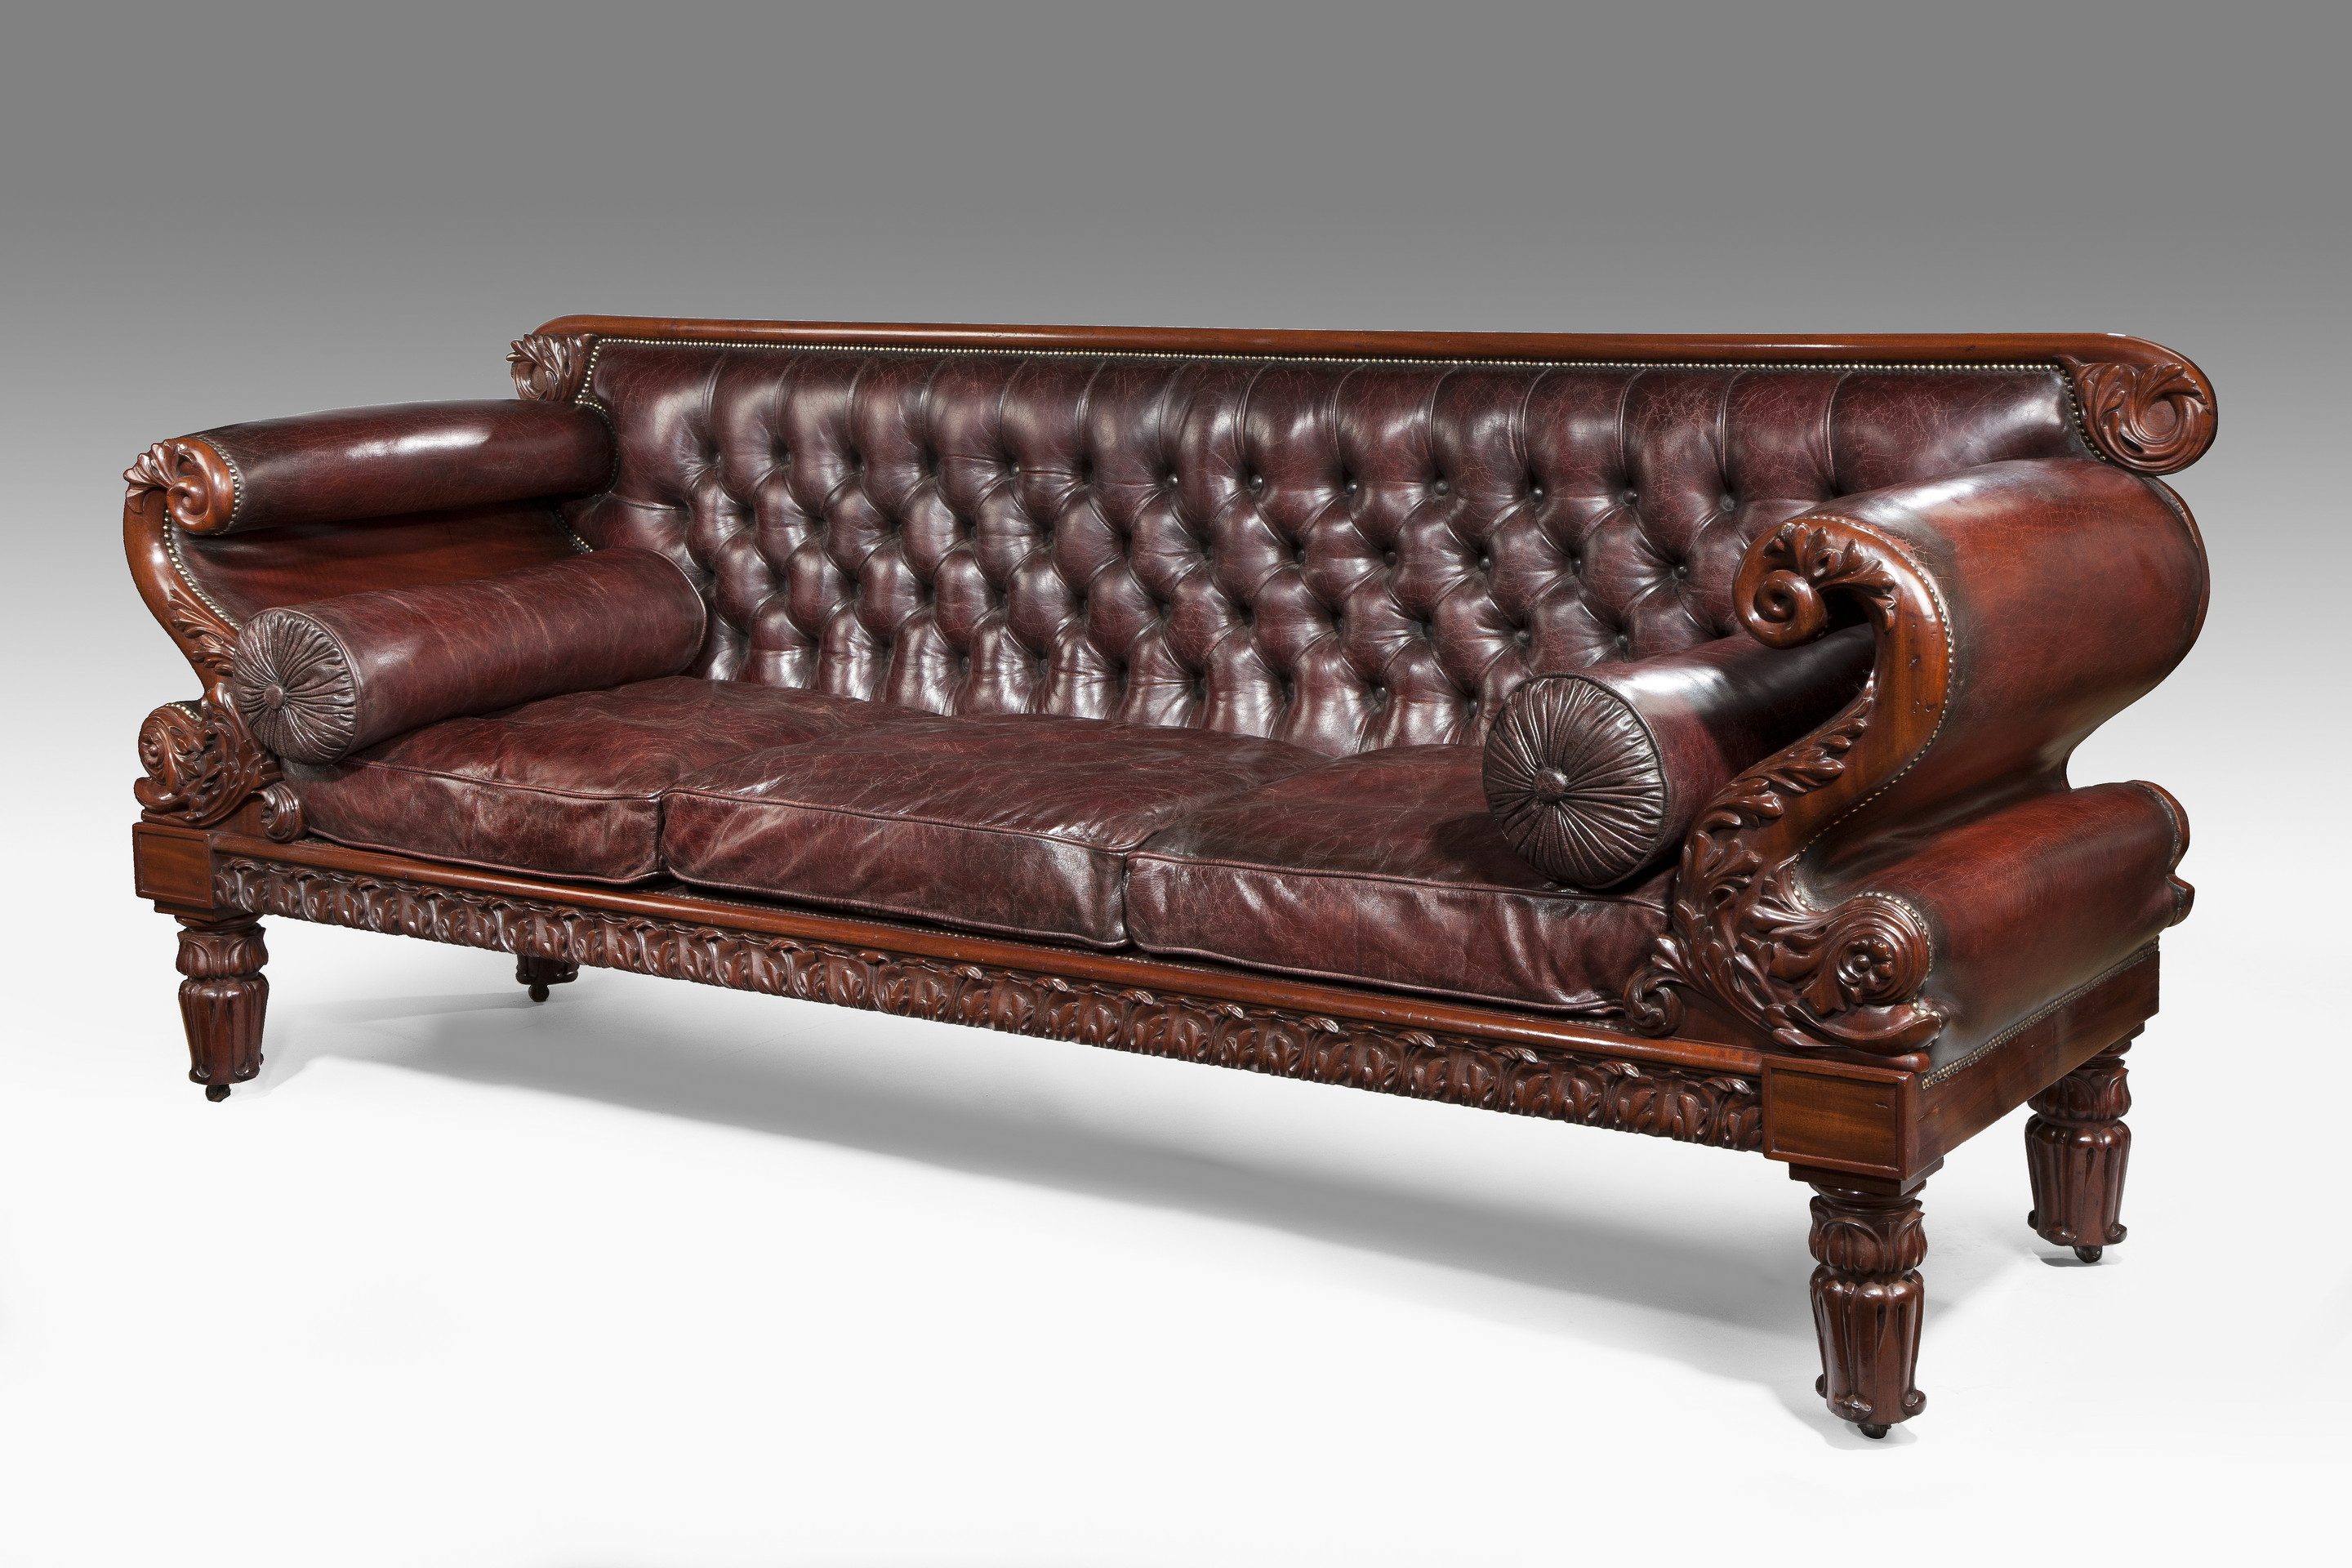 Is Adding An Antique Sofa In Your Home A Good Idea?